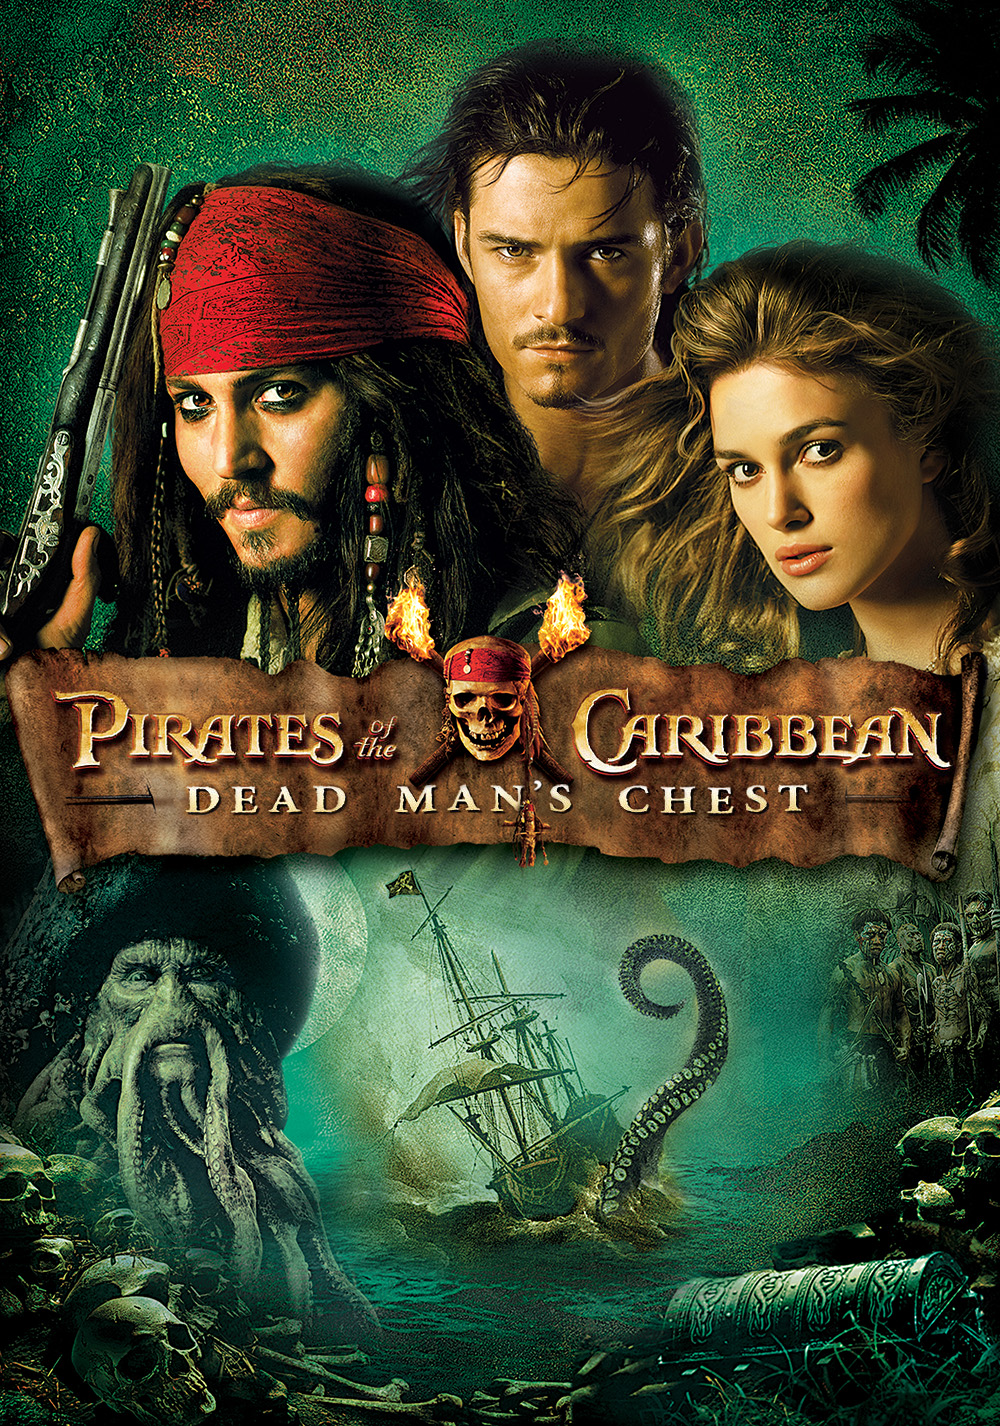 pirates-of-the-caribbean-dead-mans-chest-52399d6b21ed6.